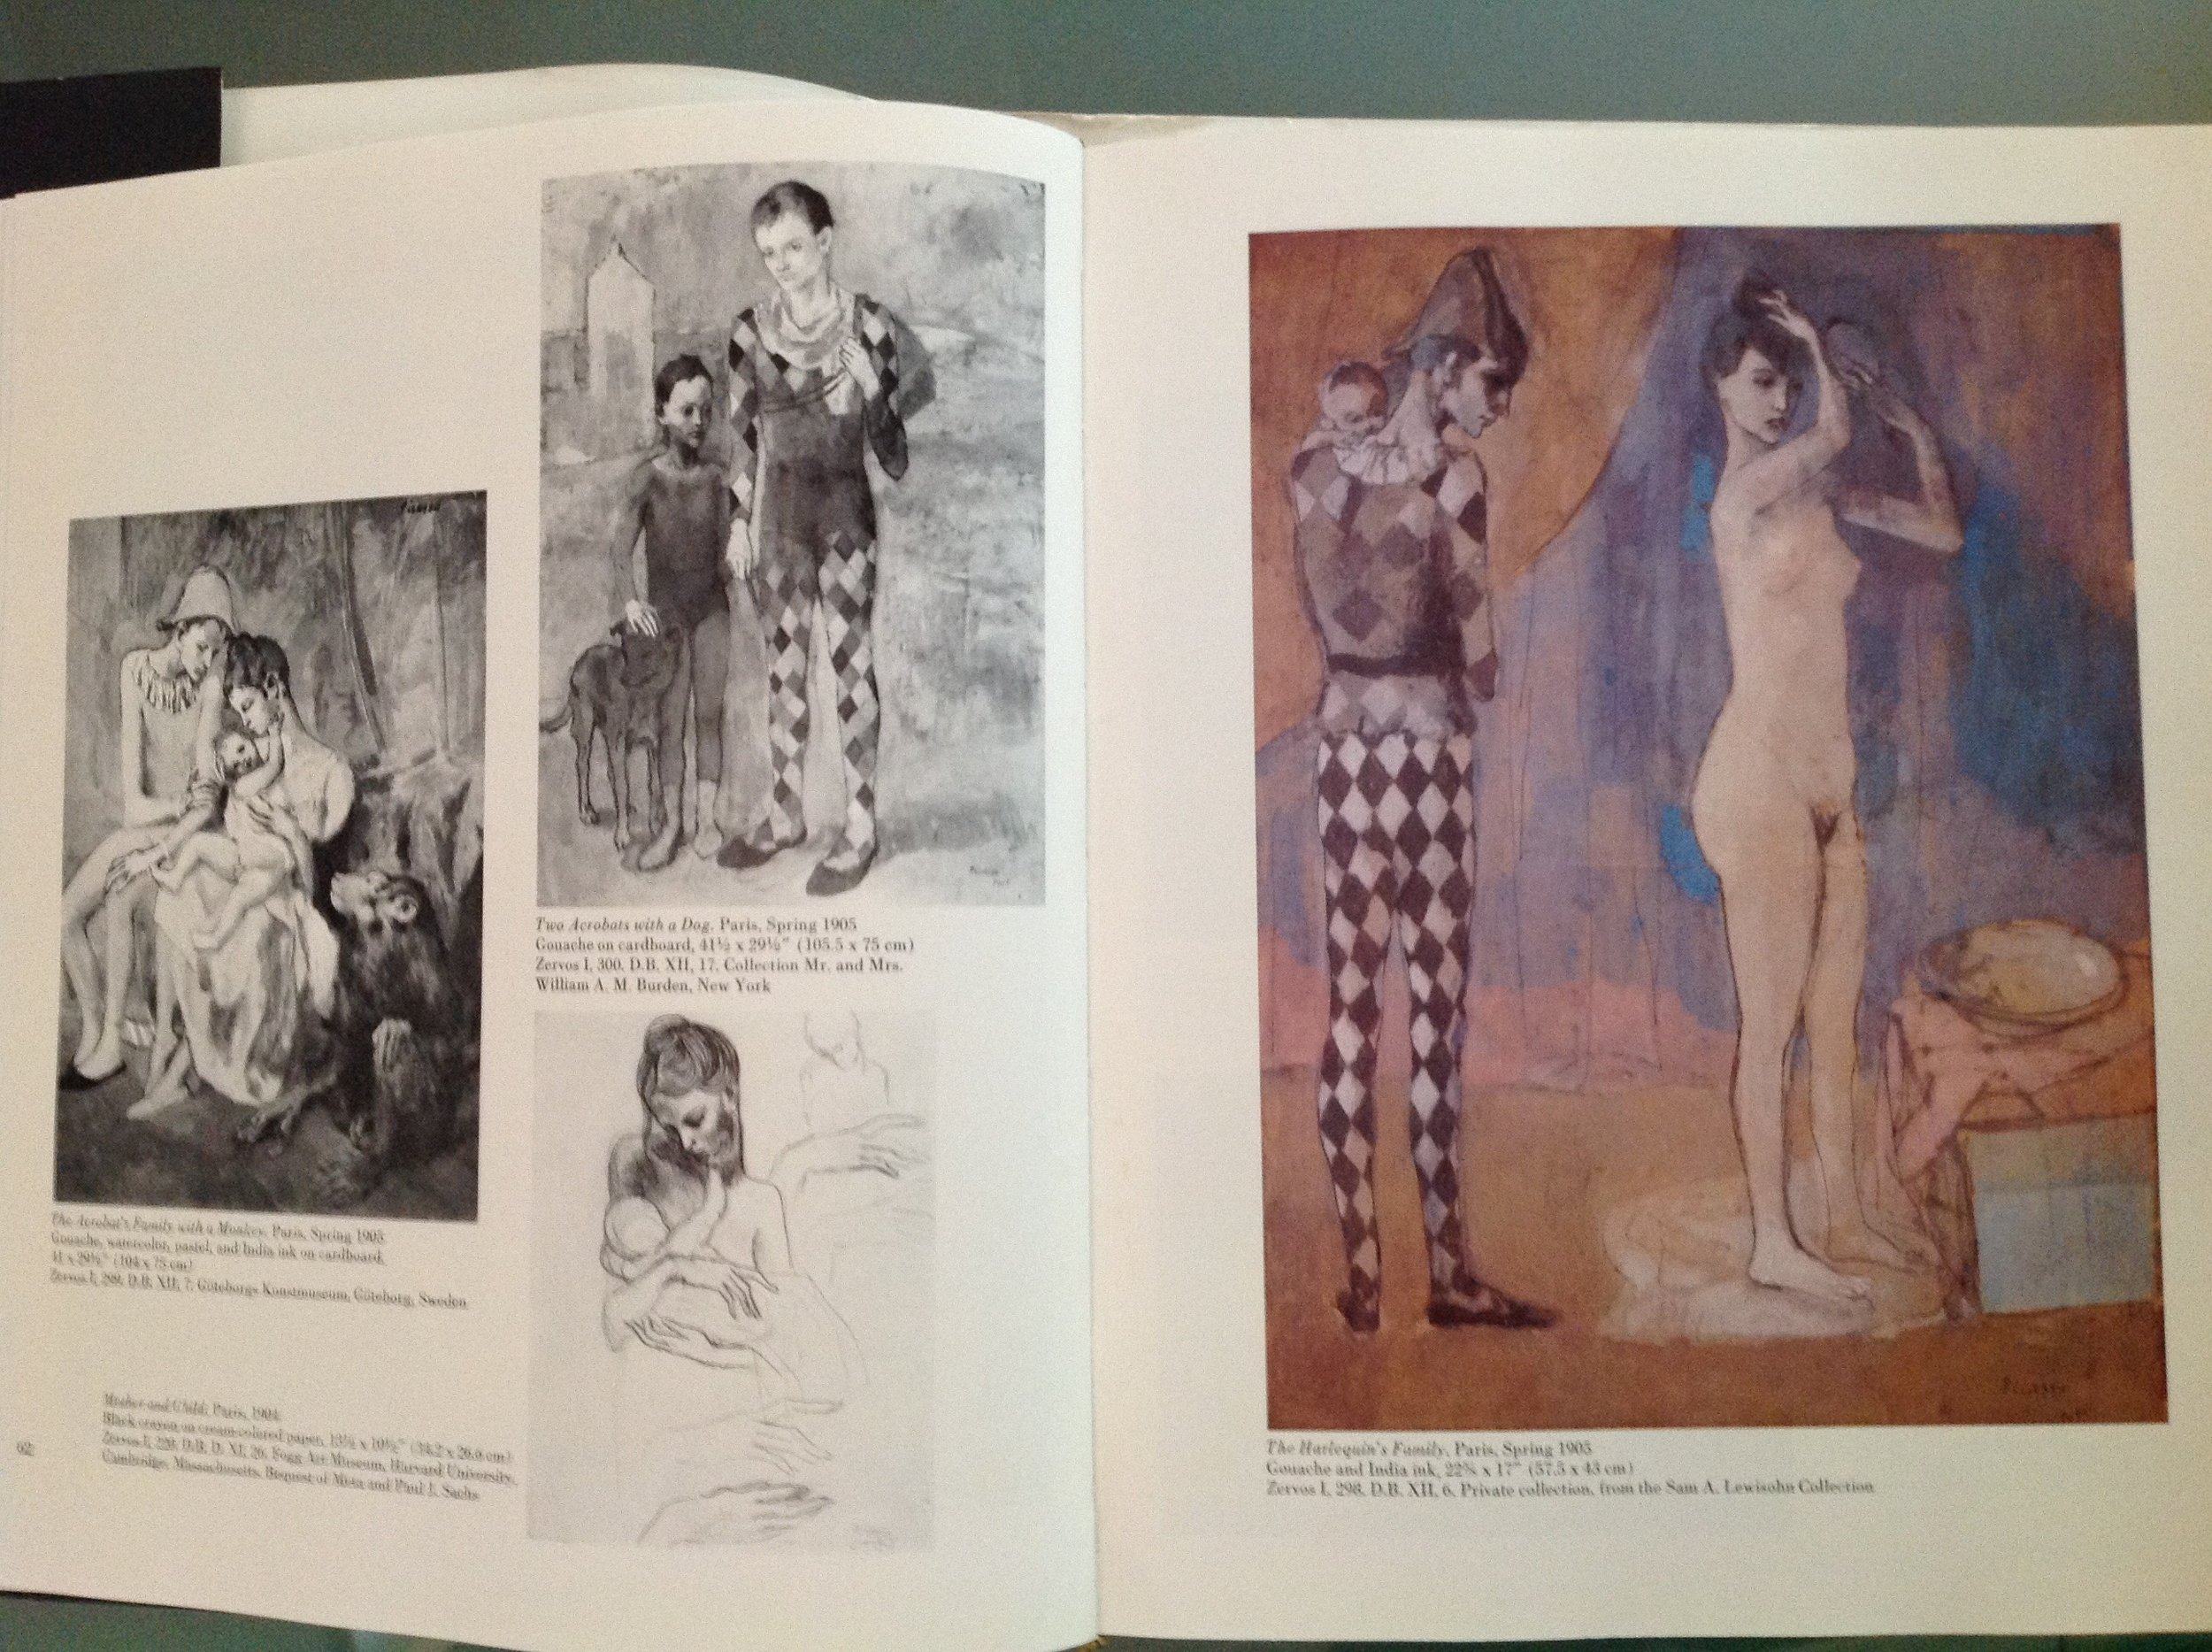 Picasso's Harlequin's Family